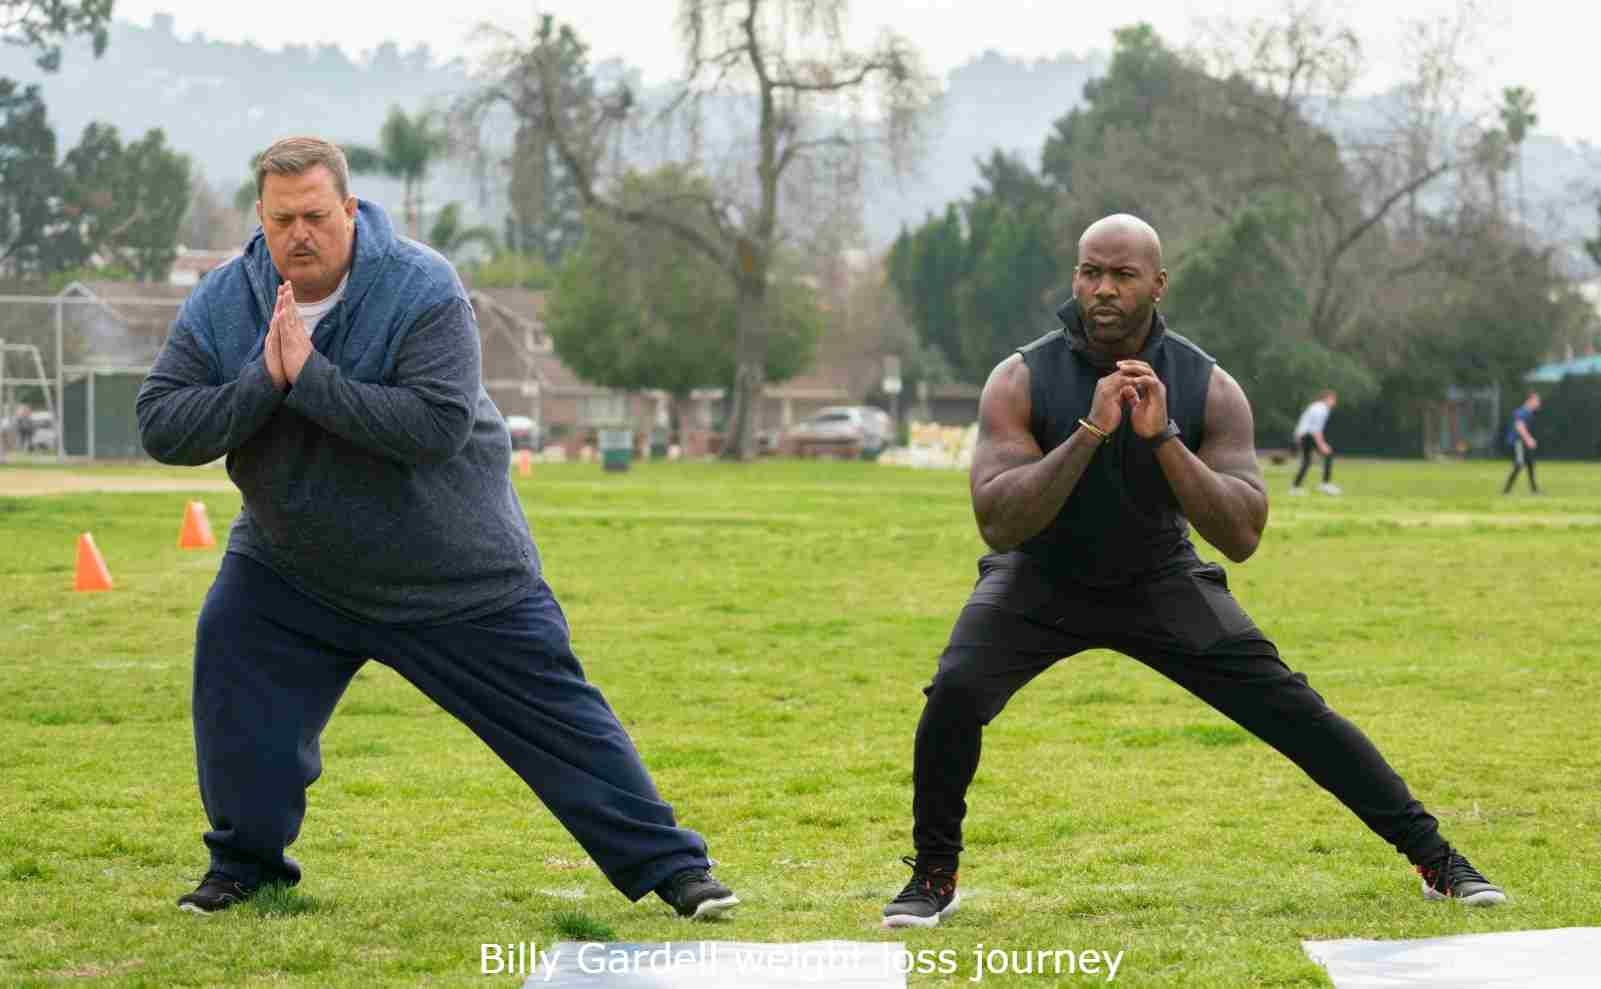 billy gardell weight loss journey